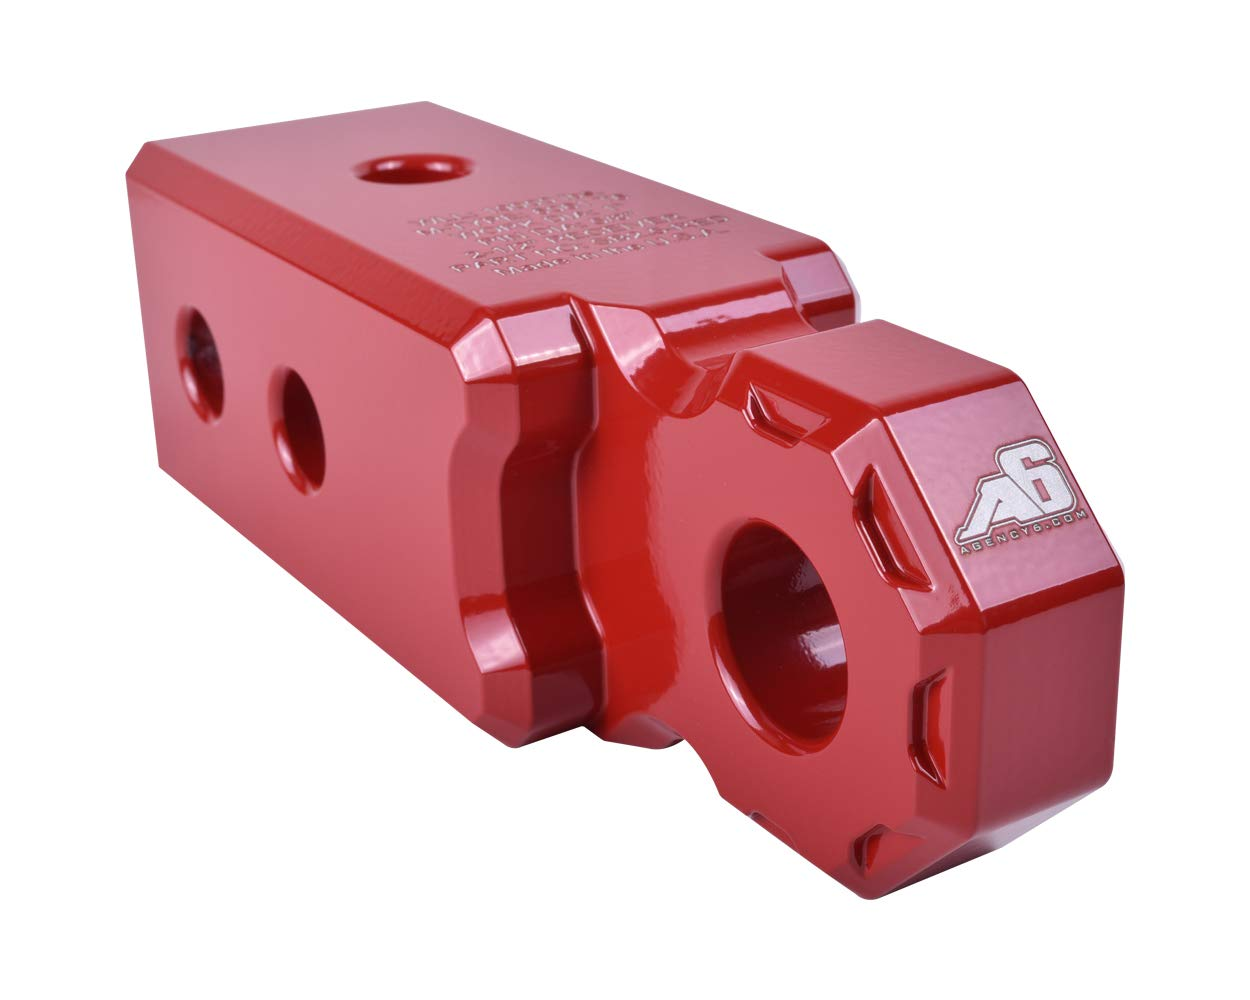 Agency 6 Recovery Shackle Block 2.5'' RED Powder Coat - Hitch Receiver Fits 2.5 inch Hitch receivers HitchLink Recovery Tow Block - Proudly Made in The USA with US Certified Materials by Agency 6